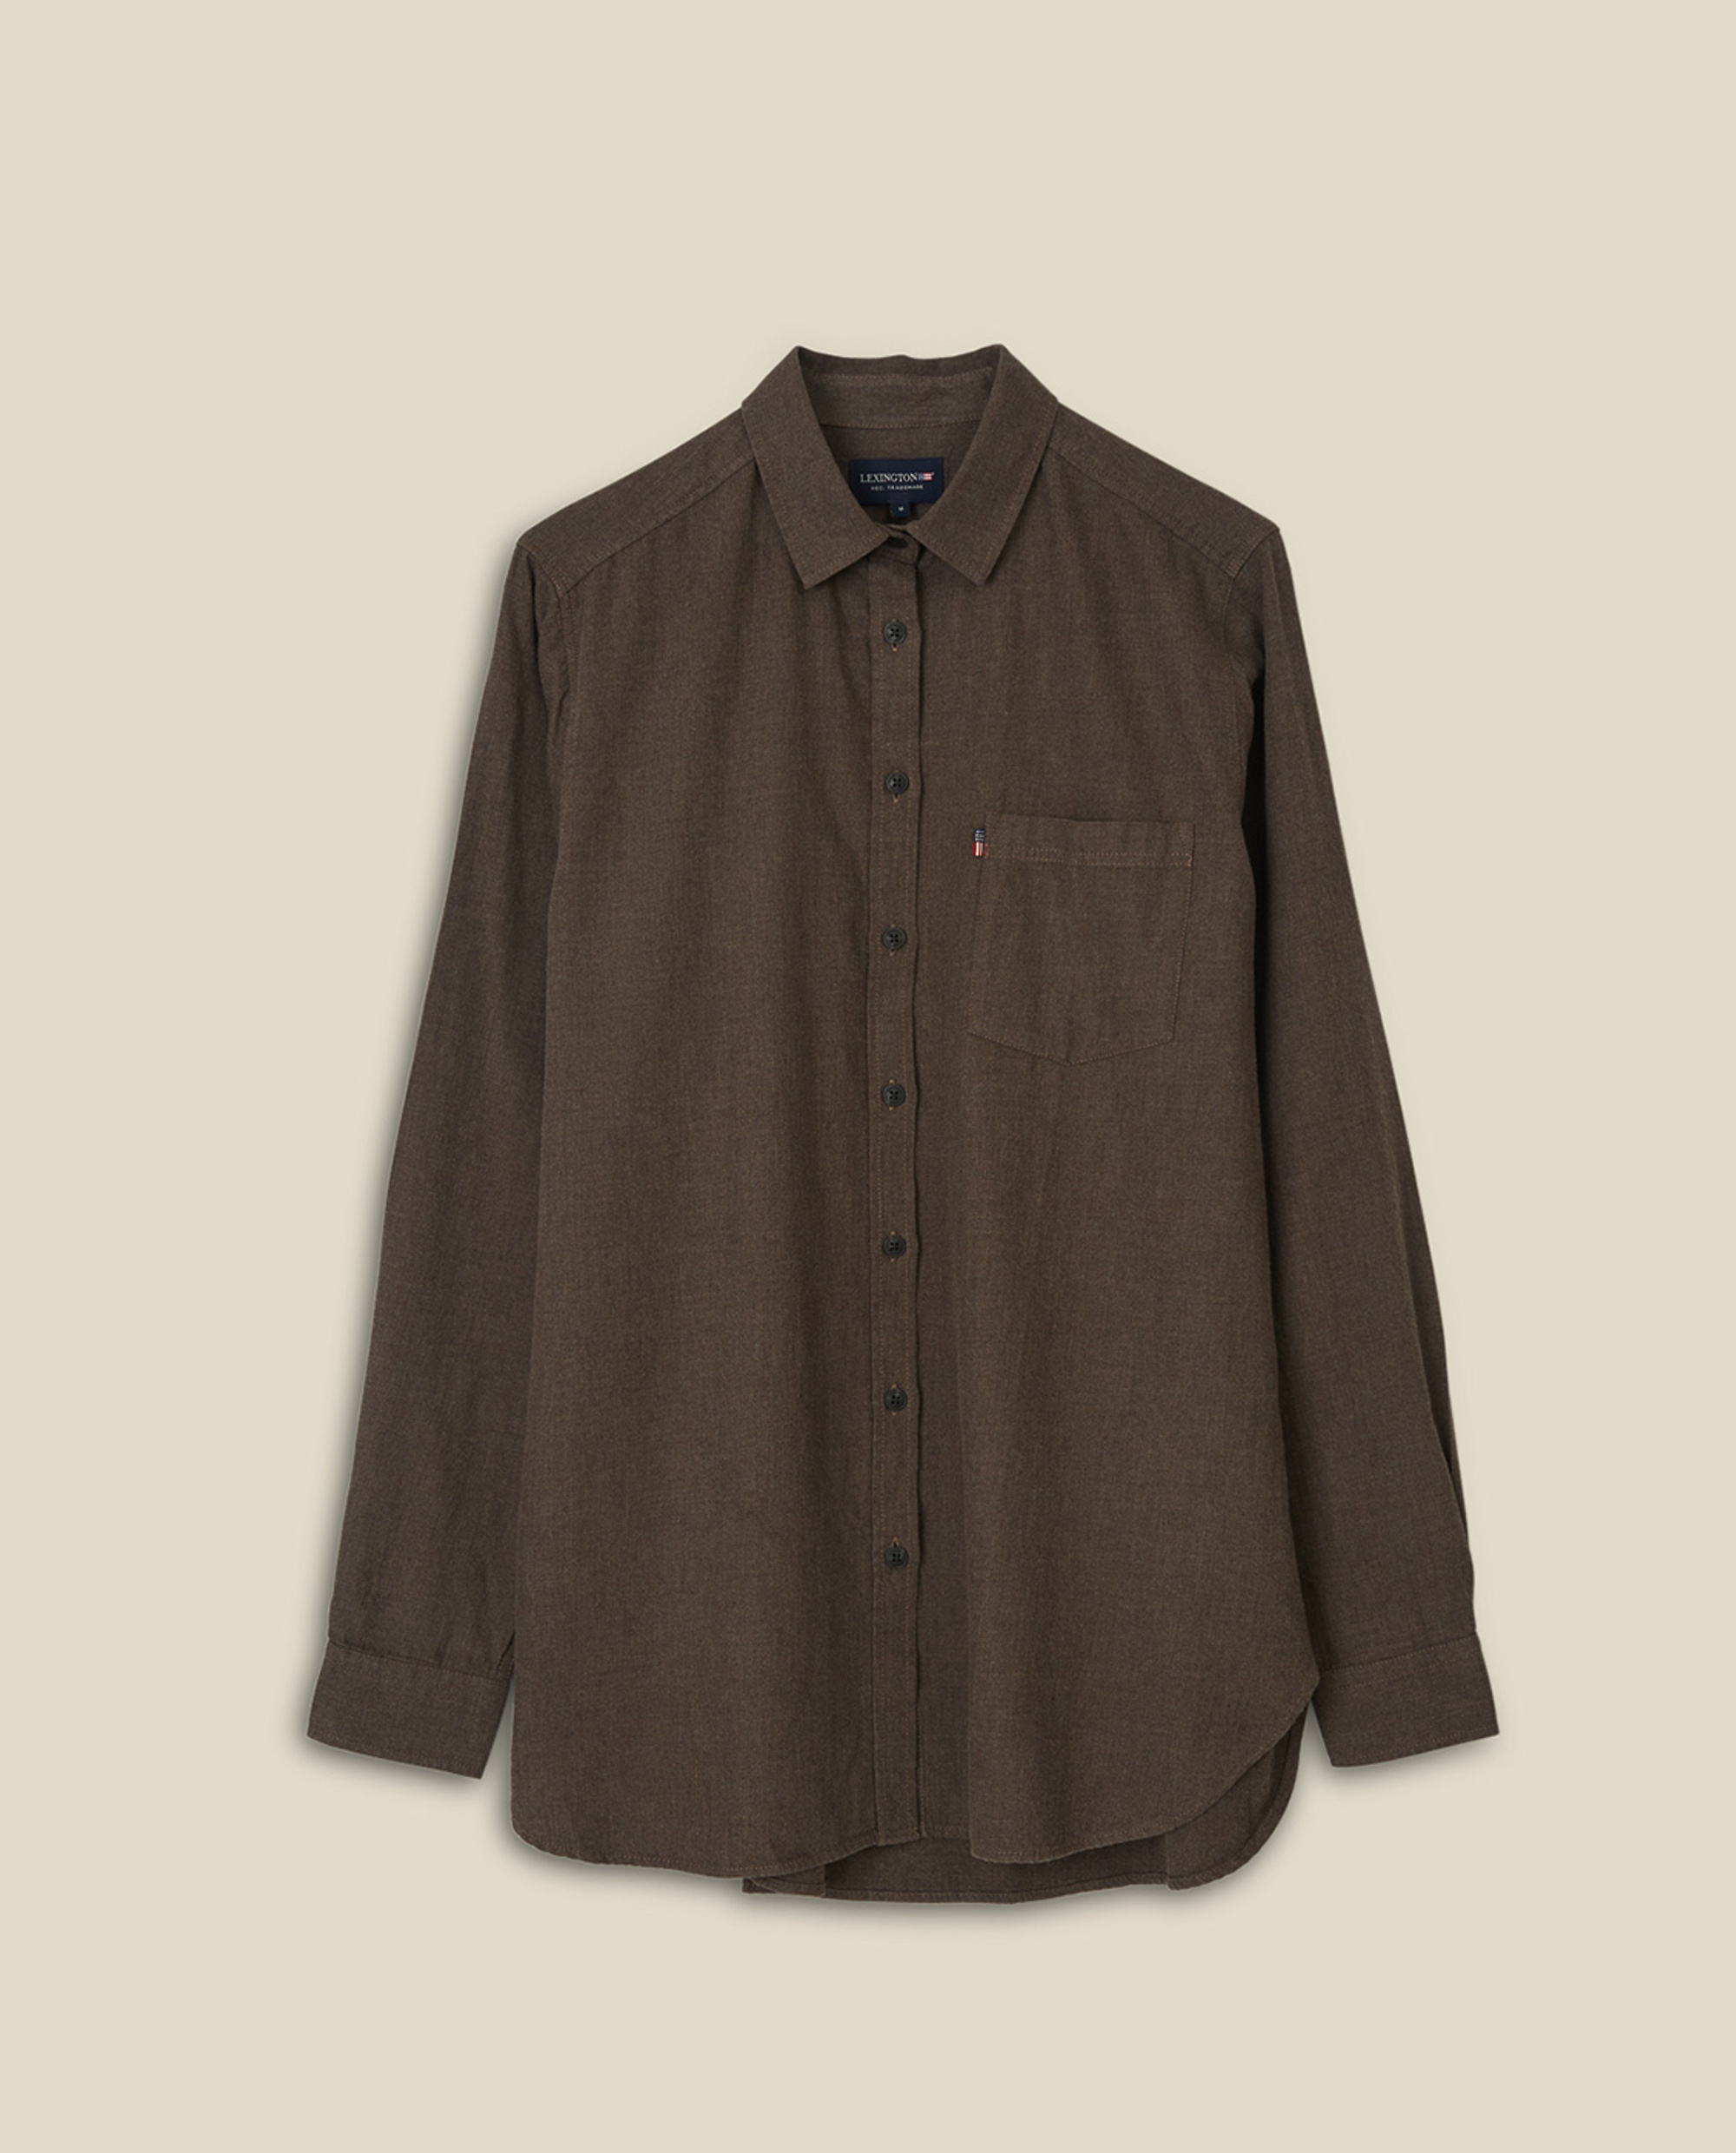 Isa Lt Flannel Shirt, Brown Melange